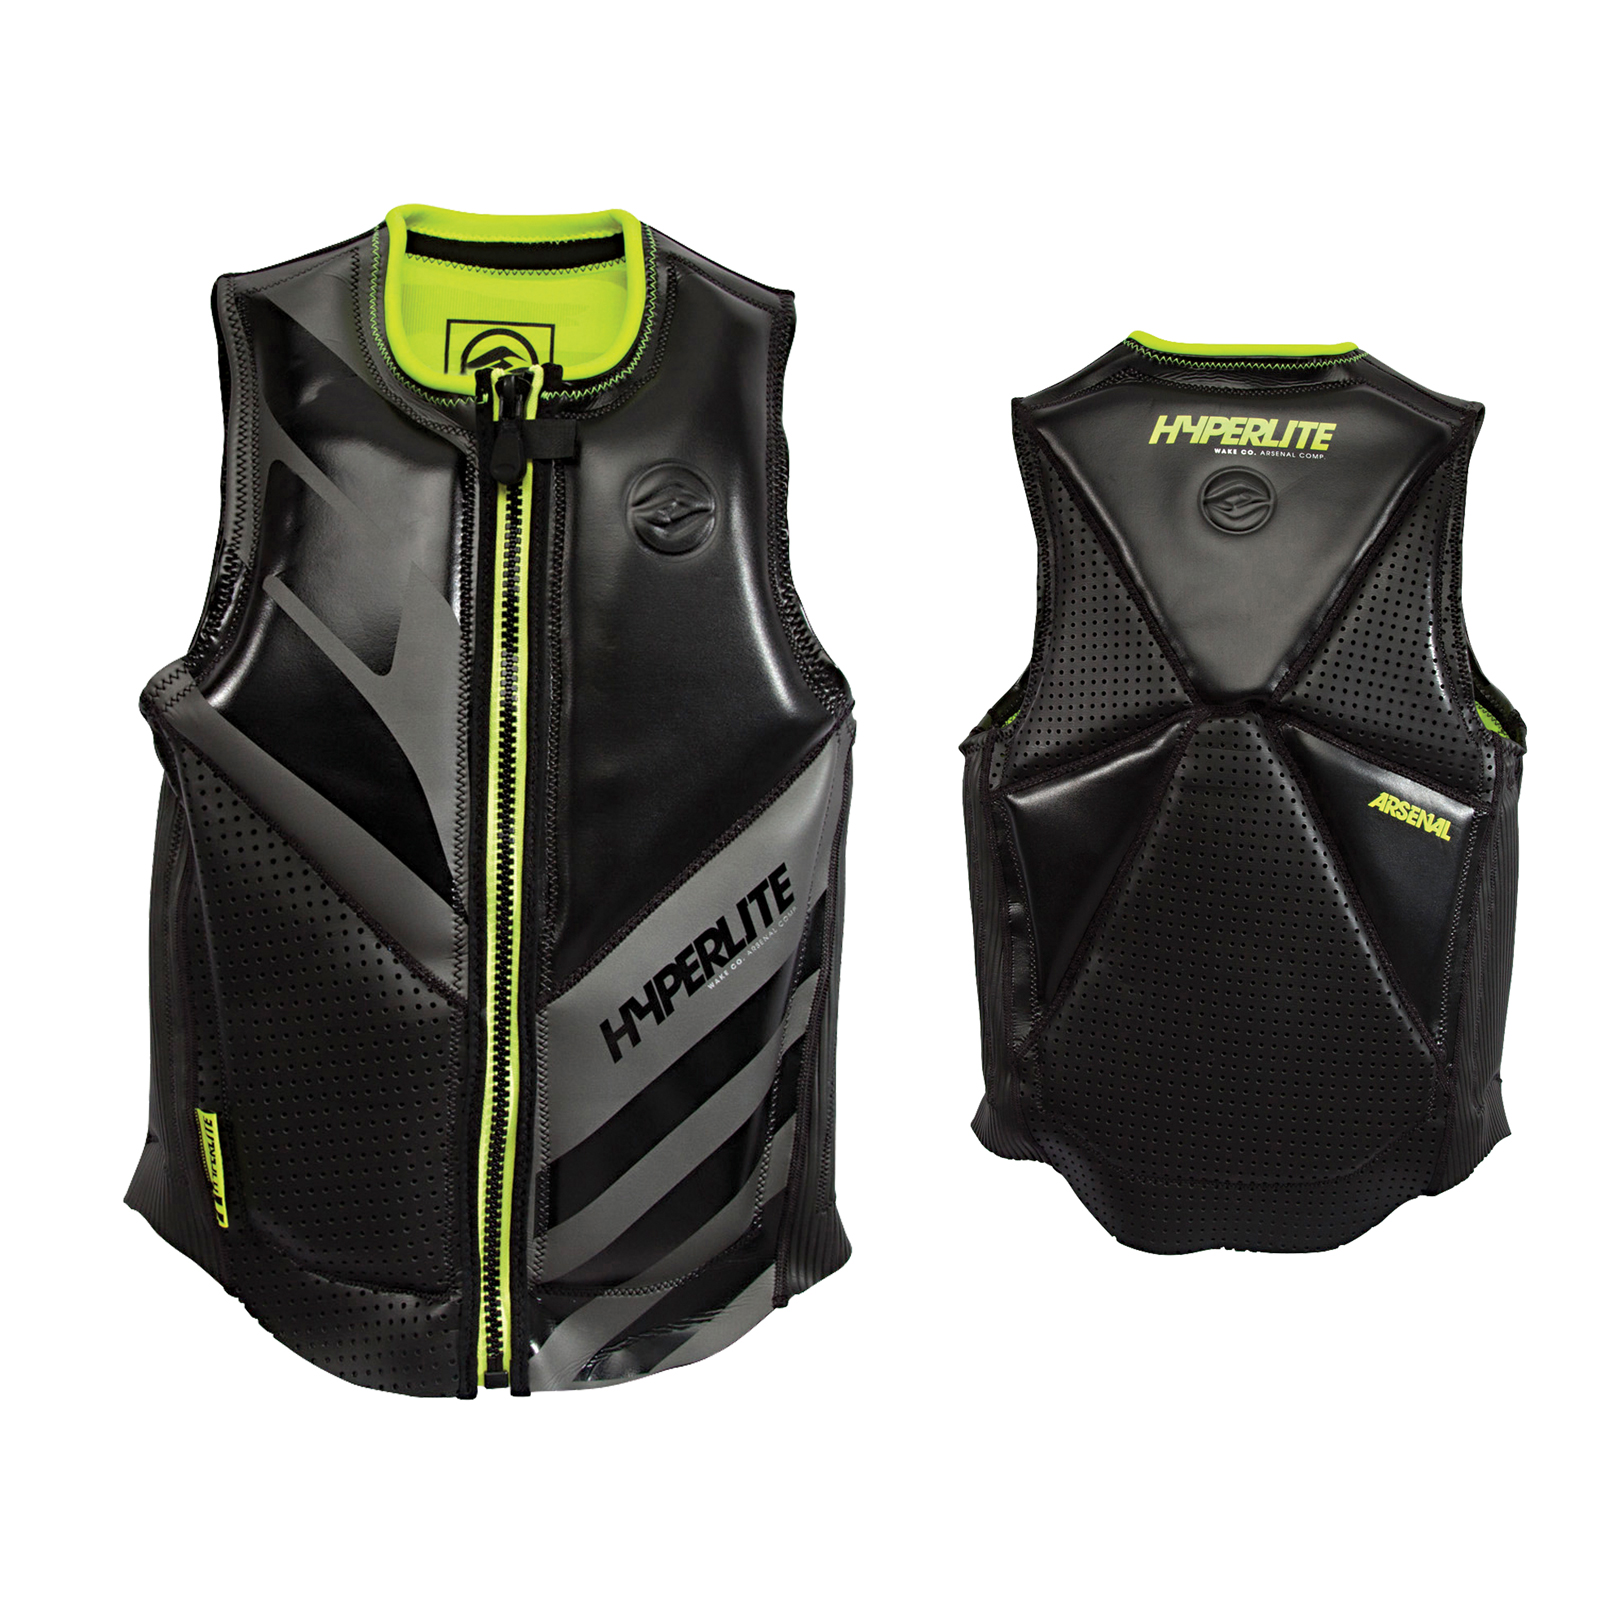 ARSENAL VEST HYPERLITE 2017